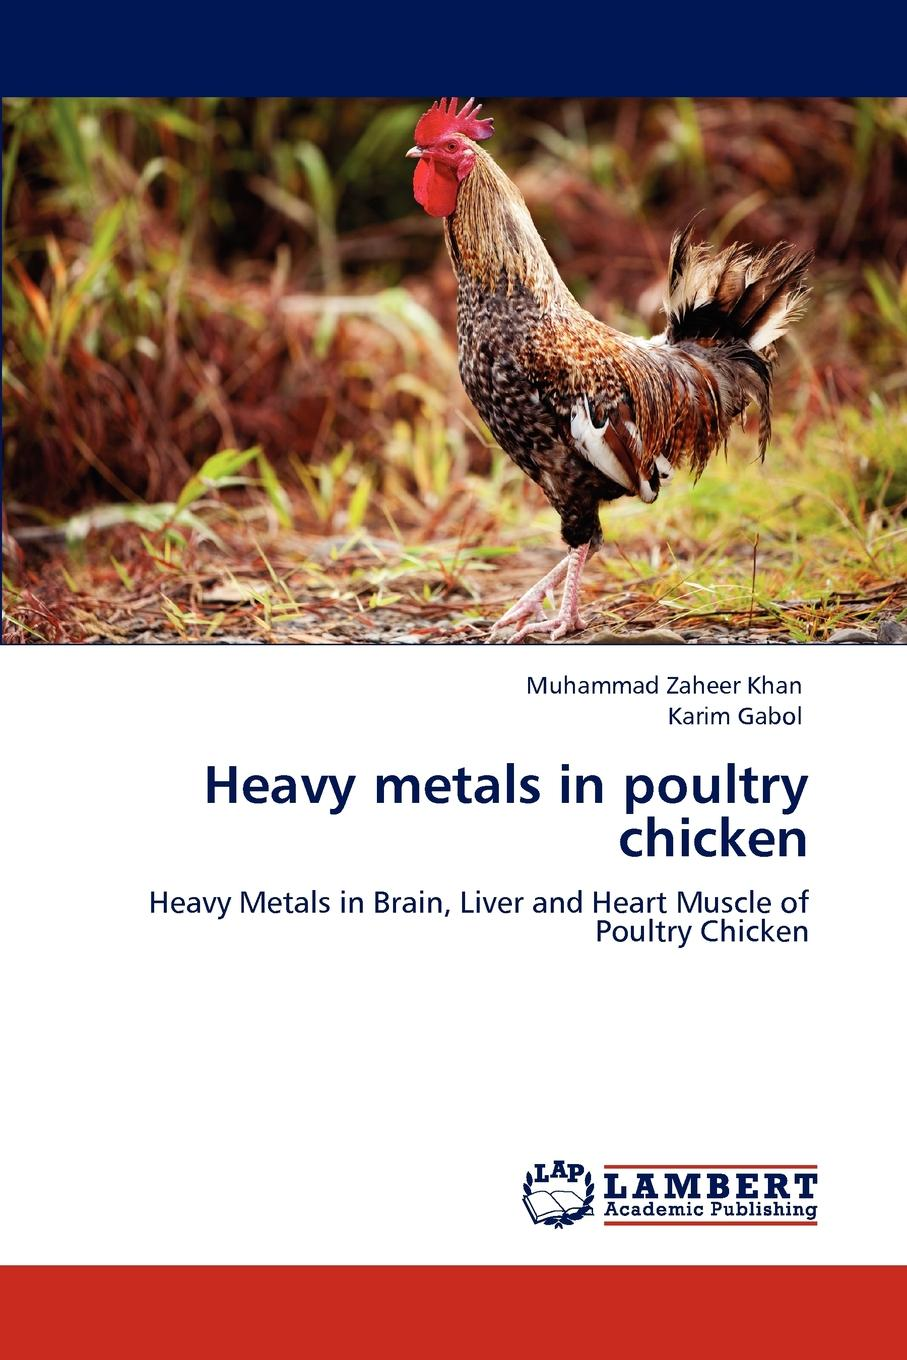 Muhammad Zaheer Khan, Karim Gabol Heavy metals in poultry chicken bioavailability and solubility equilibria of heavy metals in soils